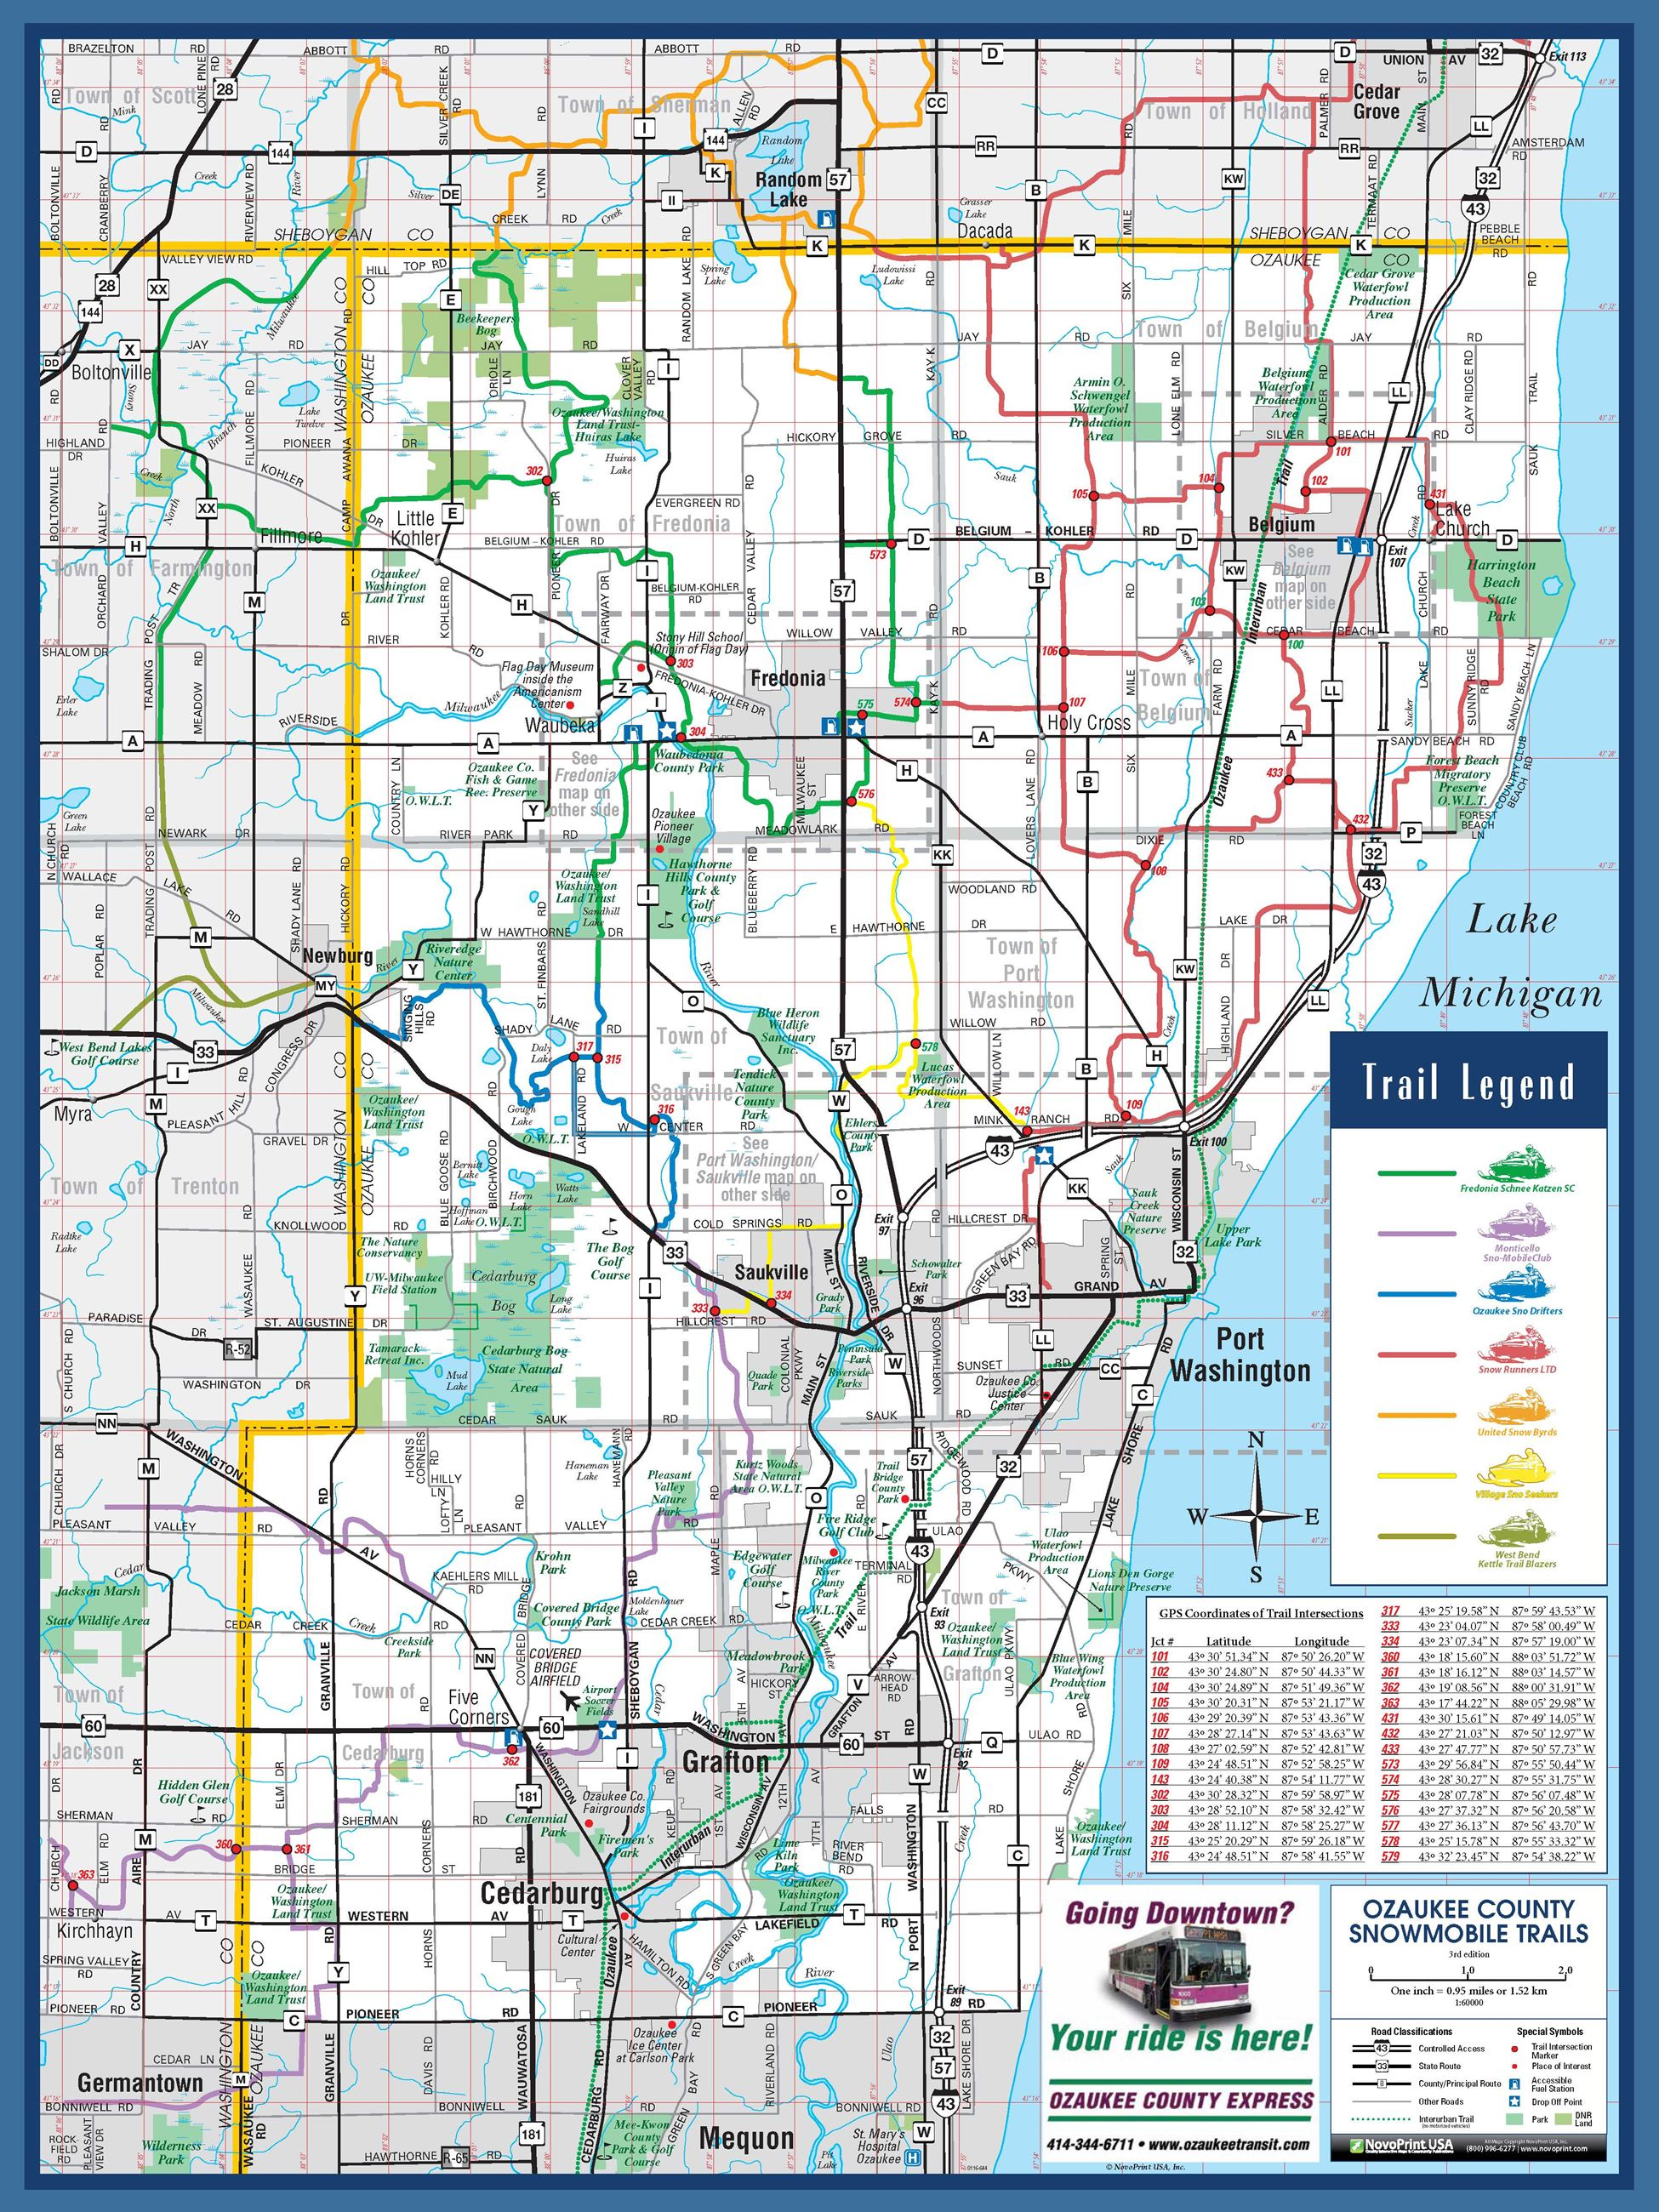 Trail Maps | Ozaukee County, WI - Official Website on map of shorewood, map of greendale, map of wausau, map of menomonee falls, map of lake geneva, map of superior, map of pewaukee, map of elm grove, map of belgium, map of mukwonago, map of fox point, map of eau claire,